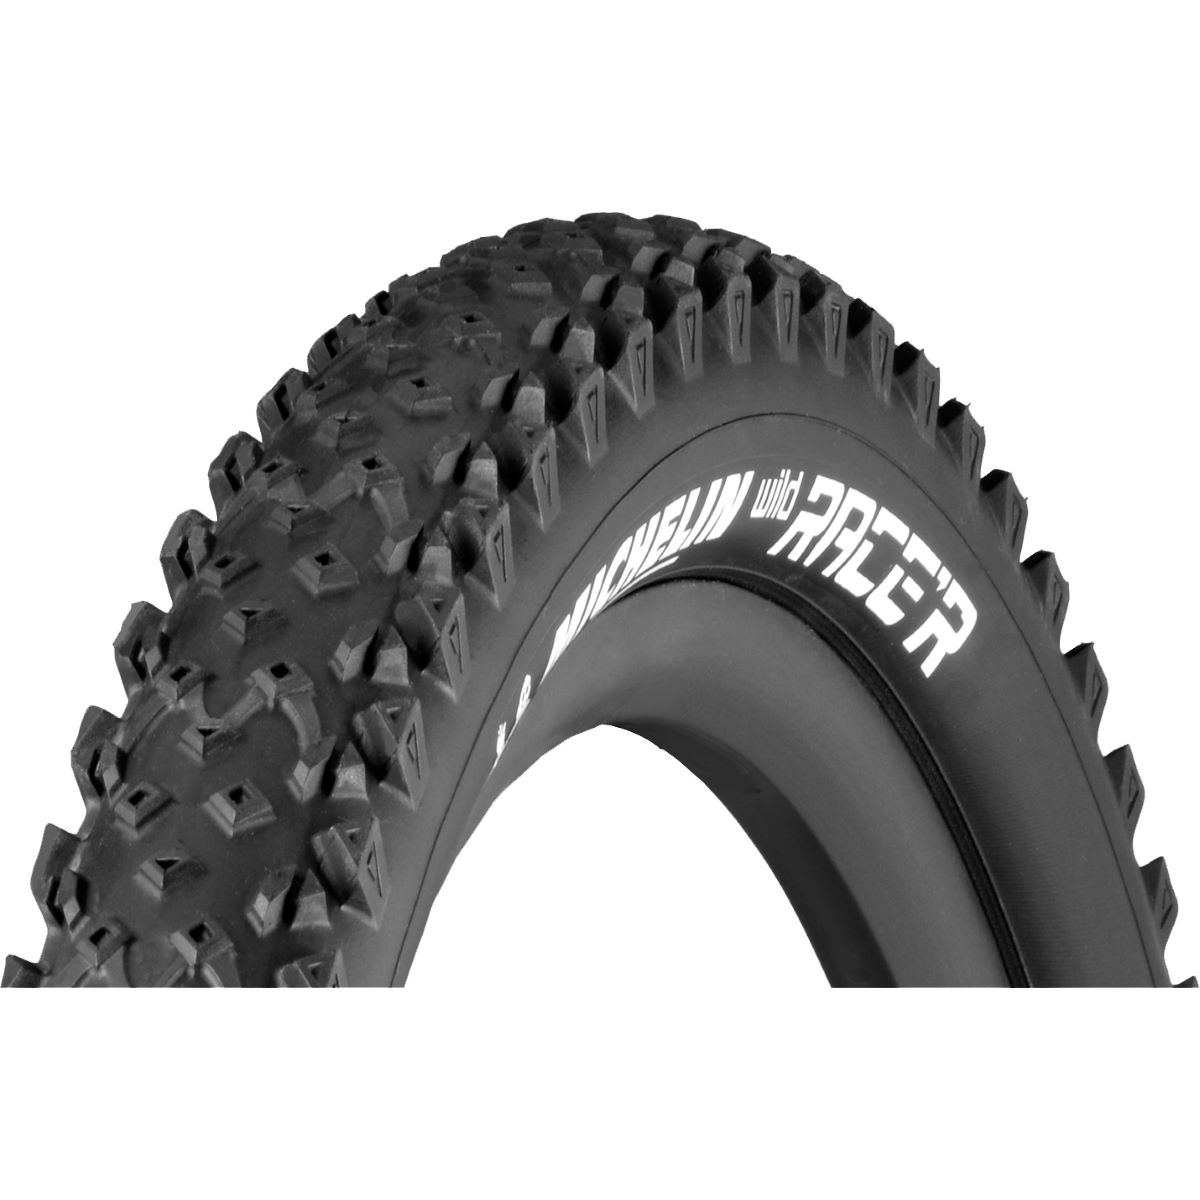 Pneu Michelin Wild Race'r Advanced Reinforced 27,5 pouces (souple) - 27.5 x 2.25 Noir Pneus VTT